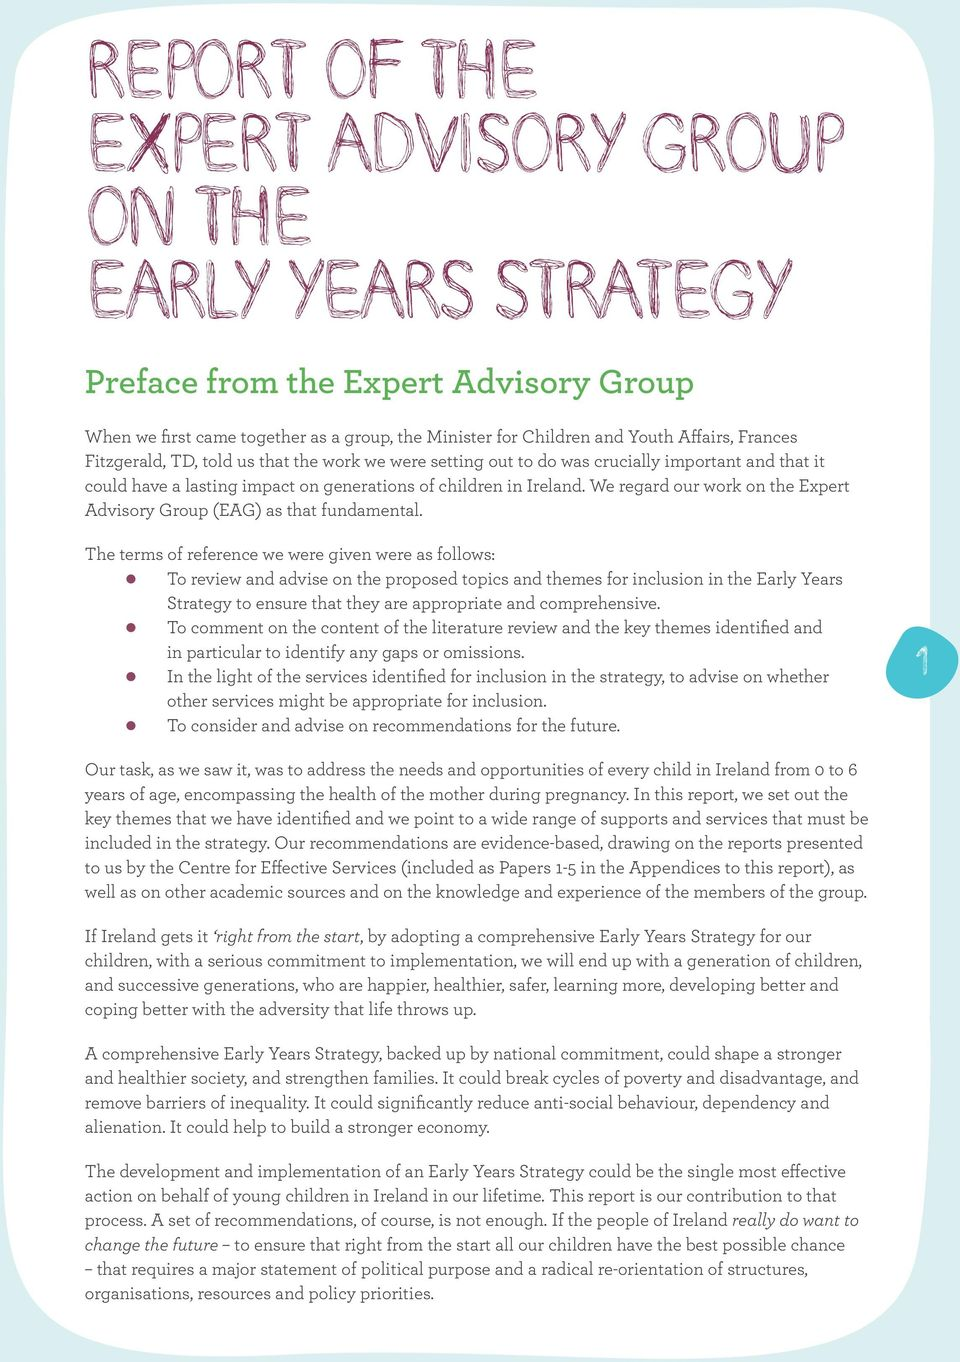 We regard our work on the Expert Advisory Group (EAG) as that fundamental.